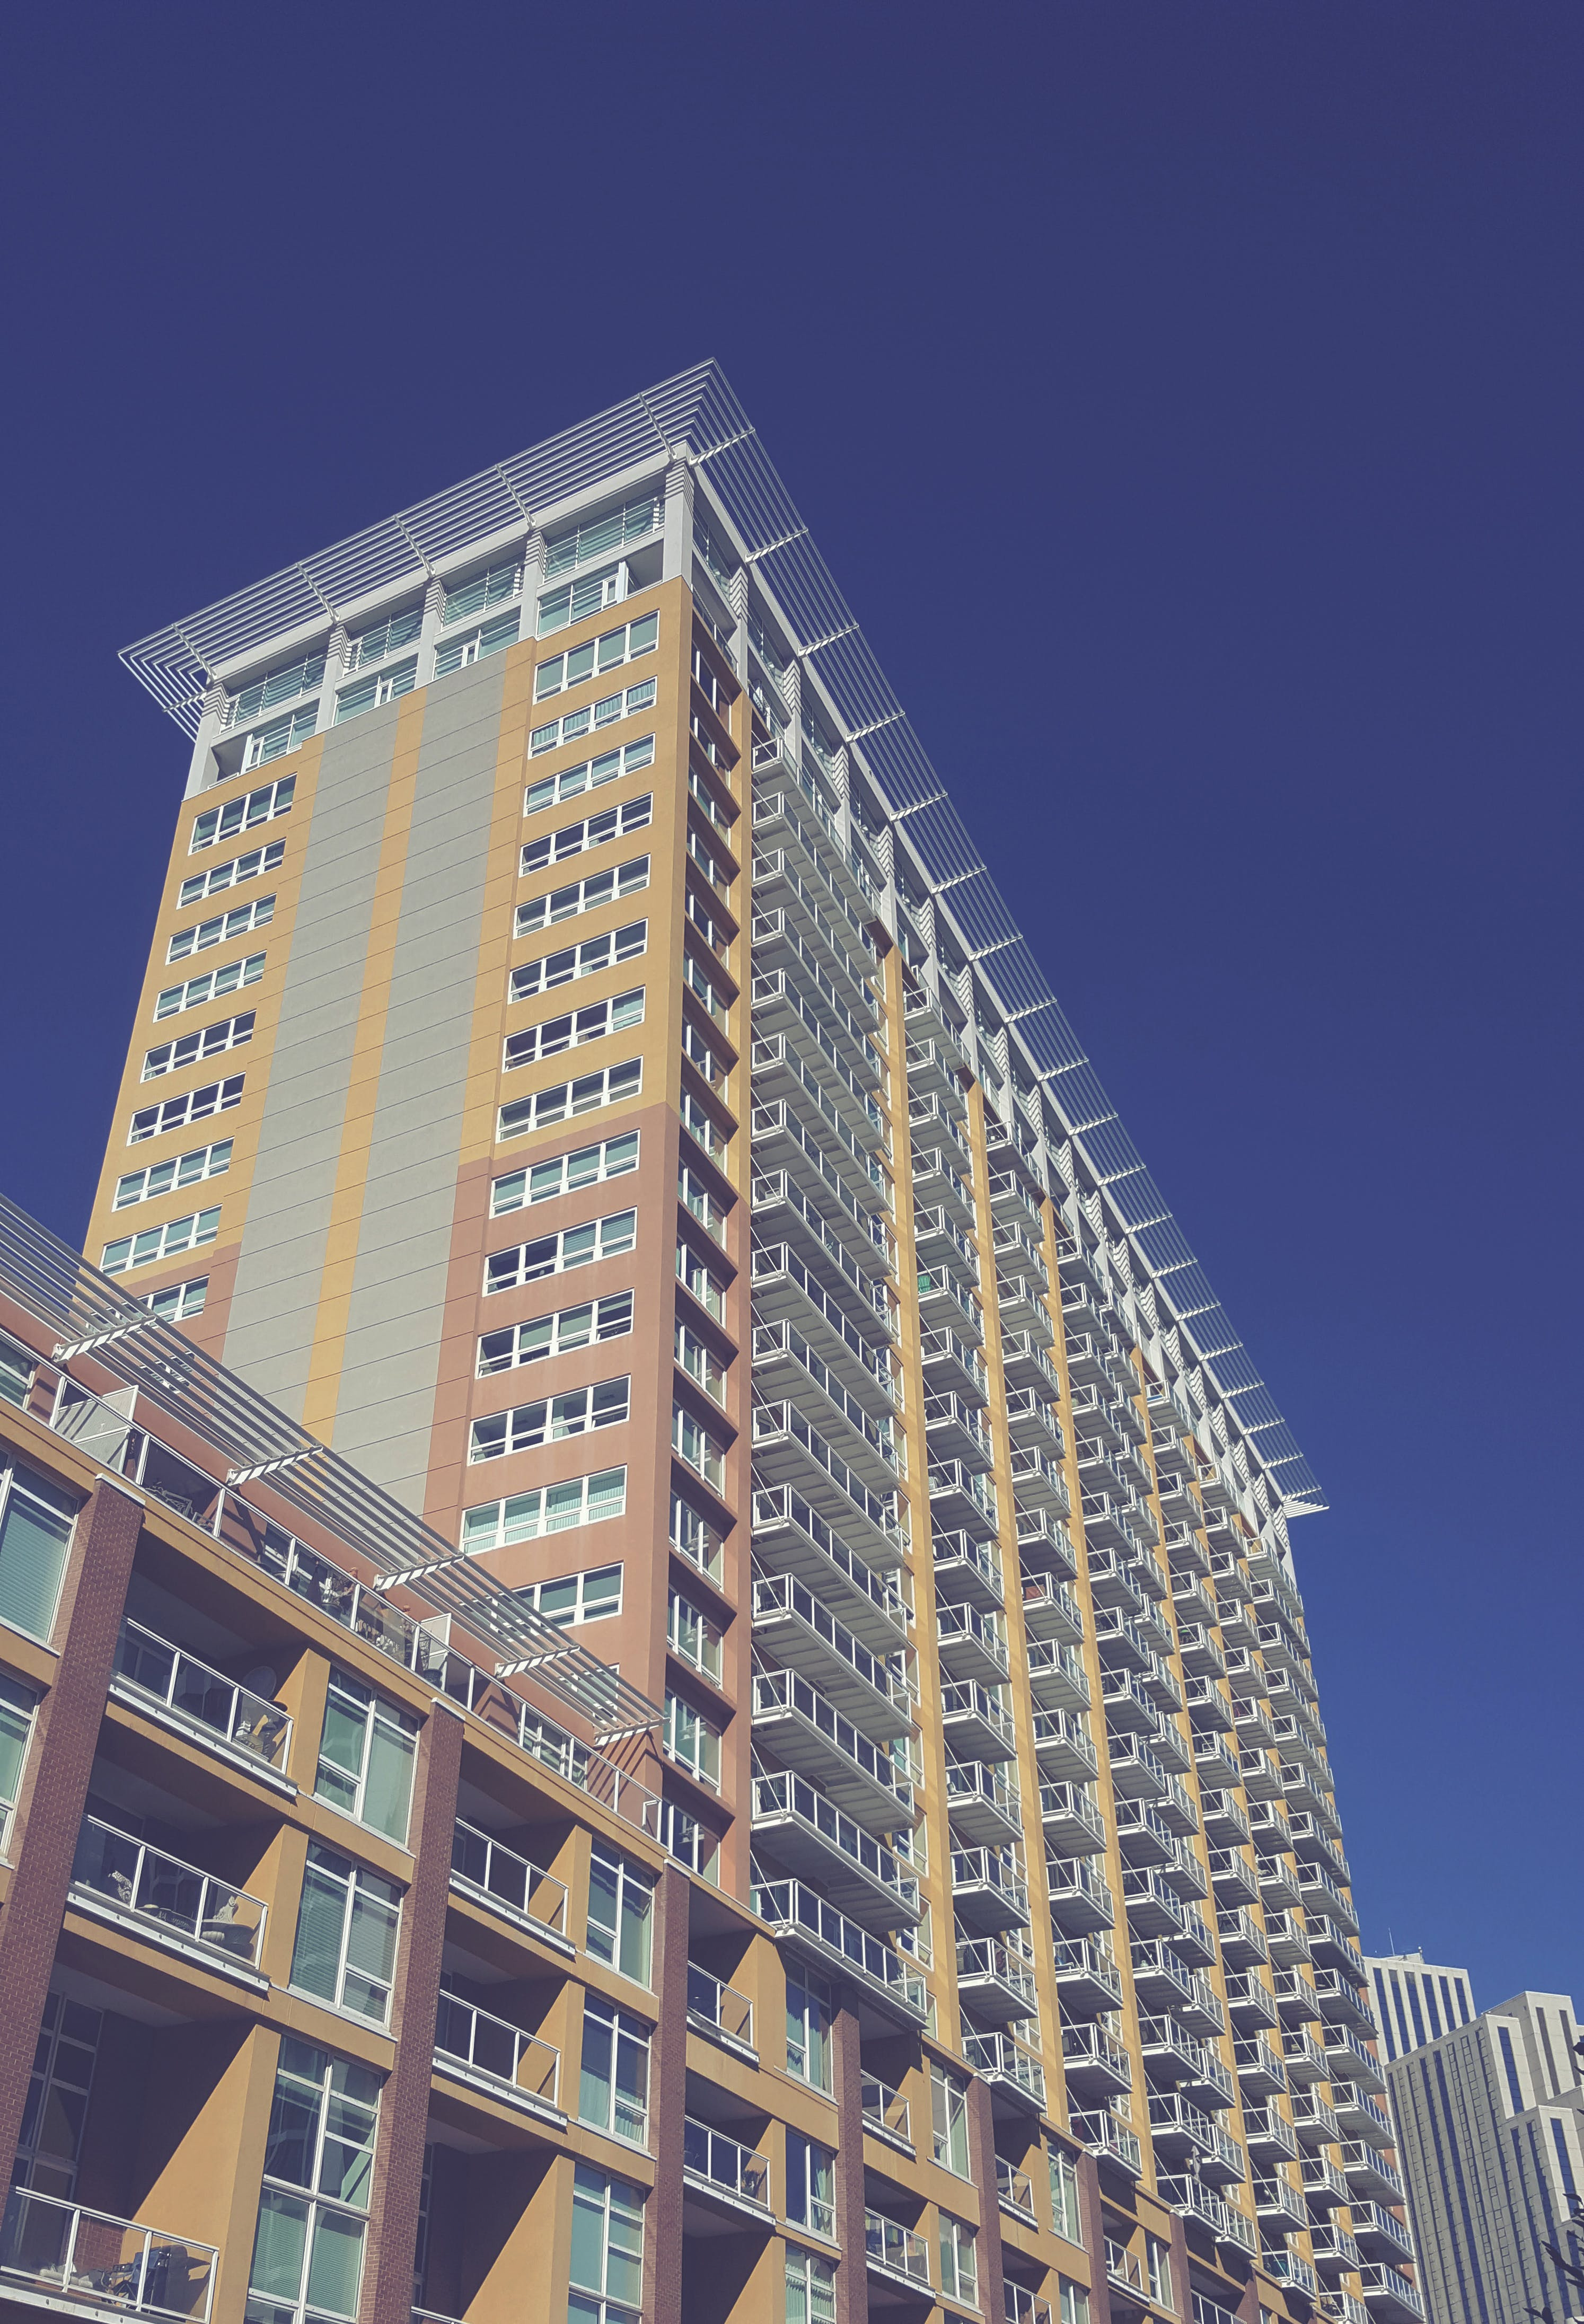 Free stock photo of apartment building, apartments, architectural, architecture